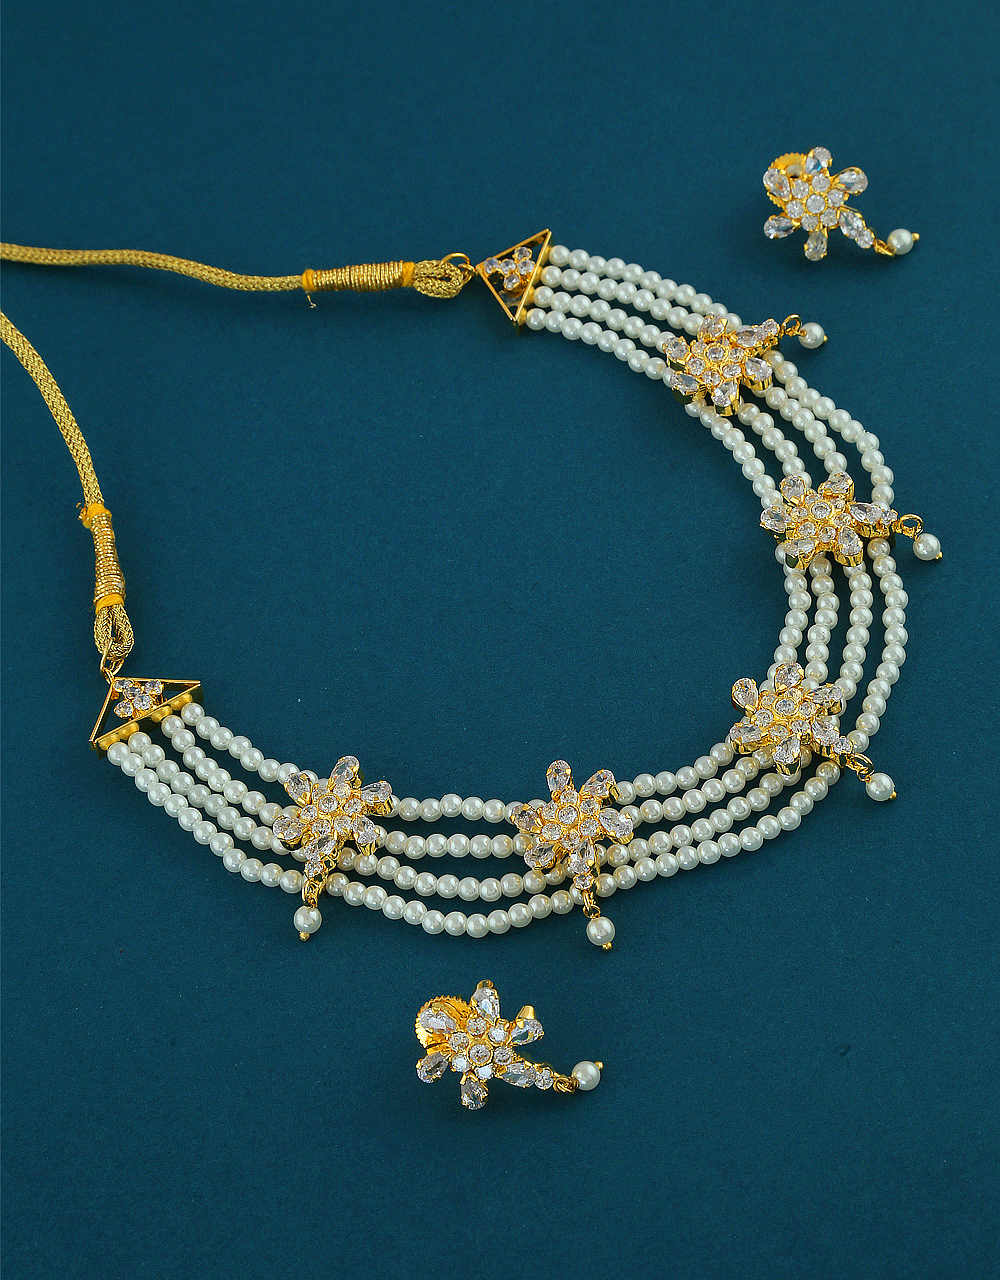 Floral Design Gold Finish Pearls Short Necklace For Girls